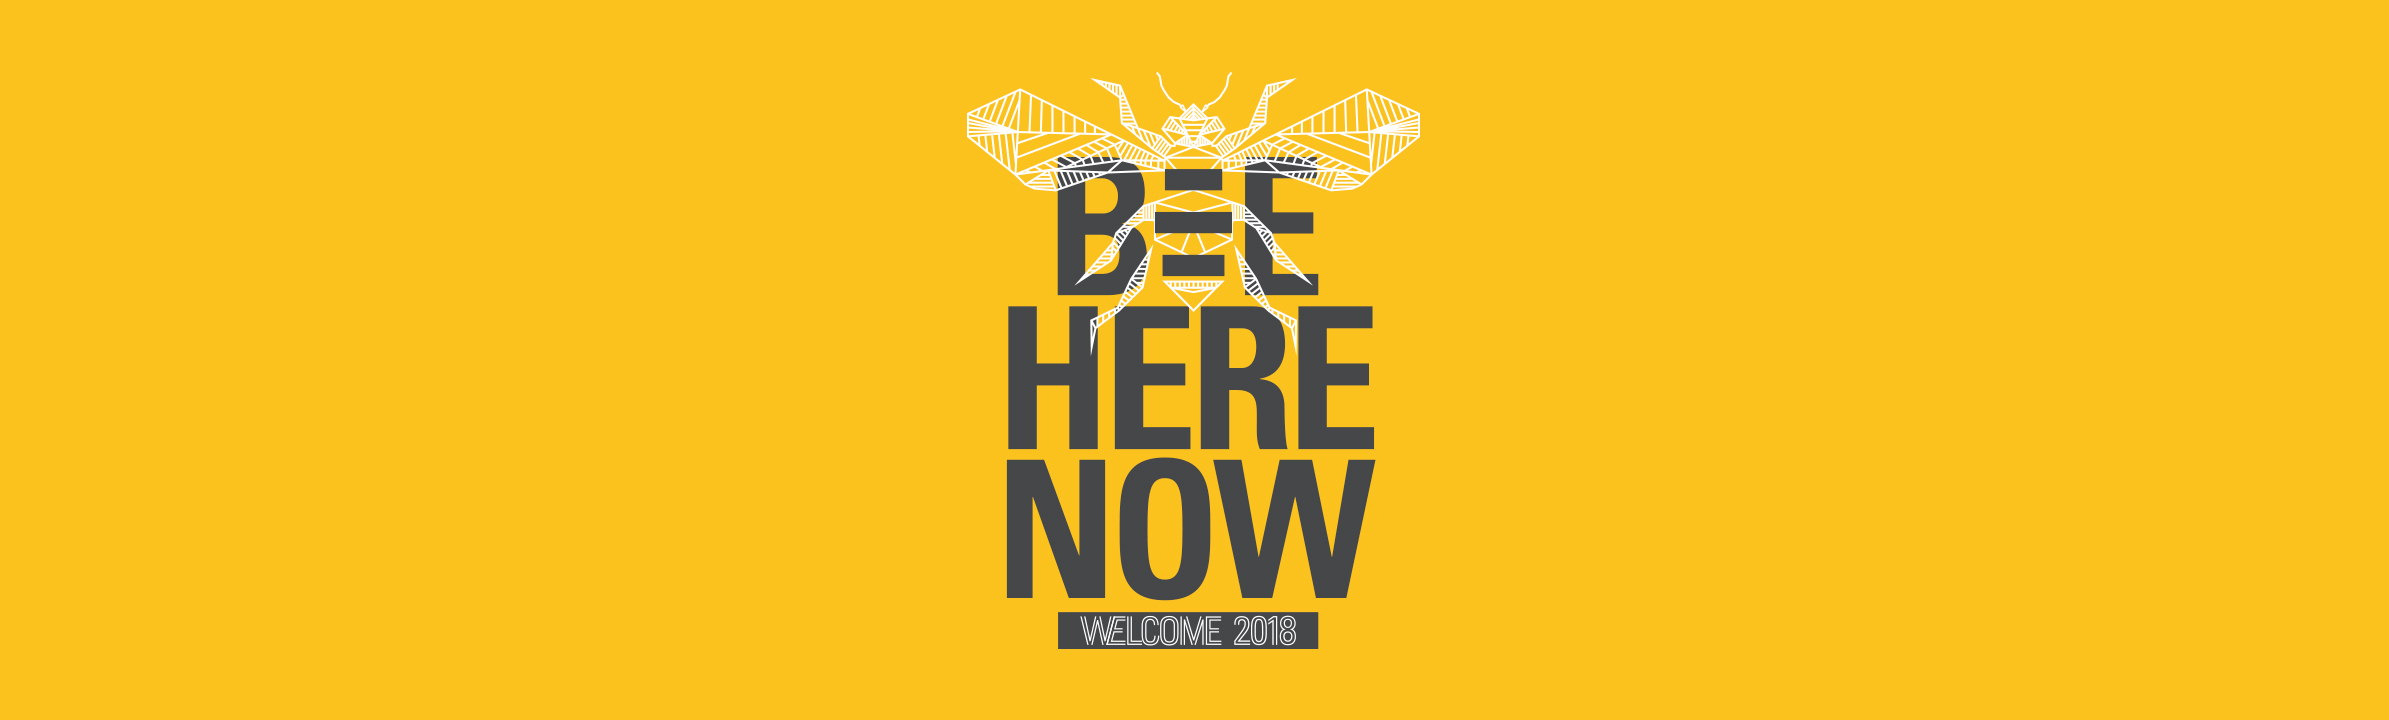 Bee here now - Welcome 2018